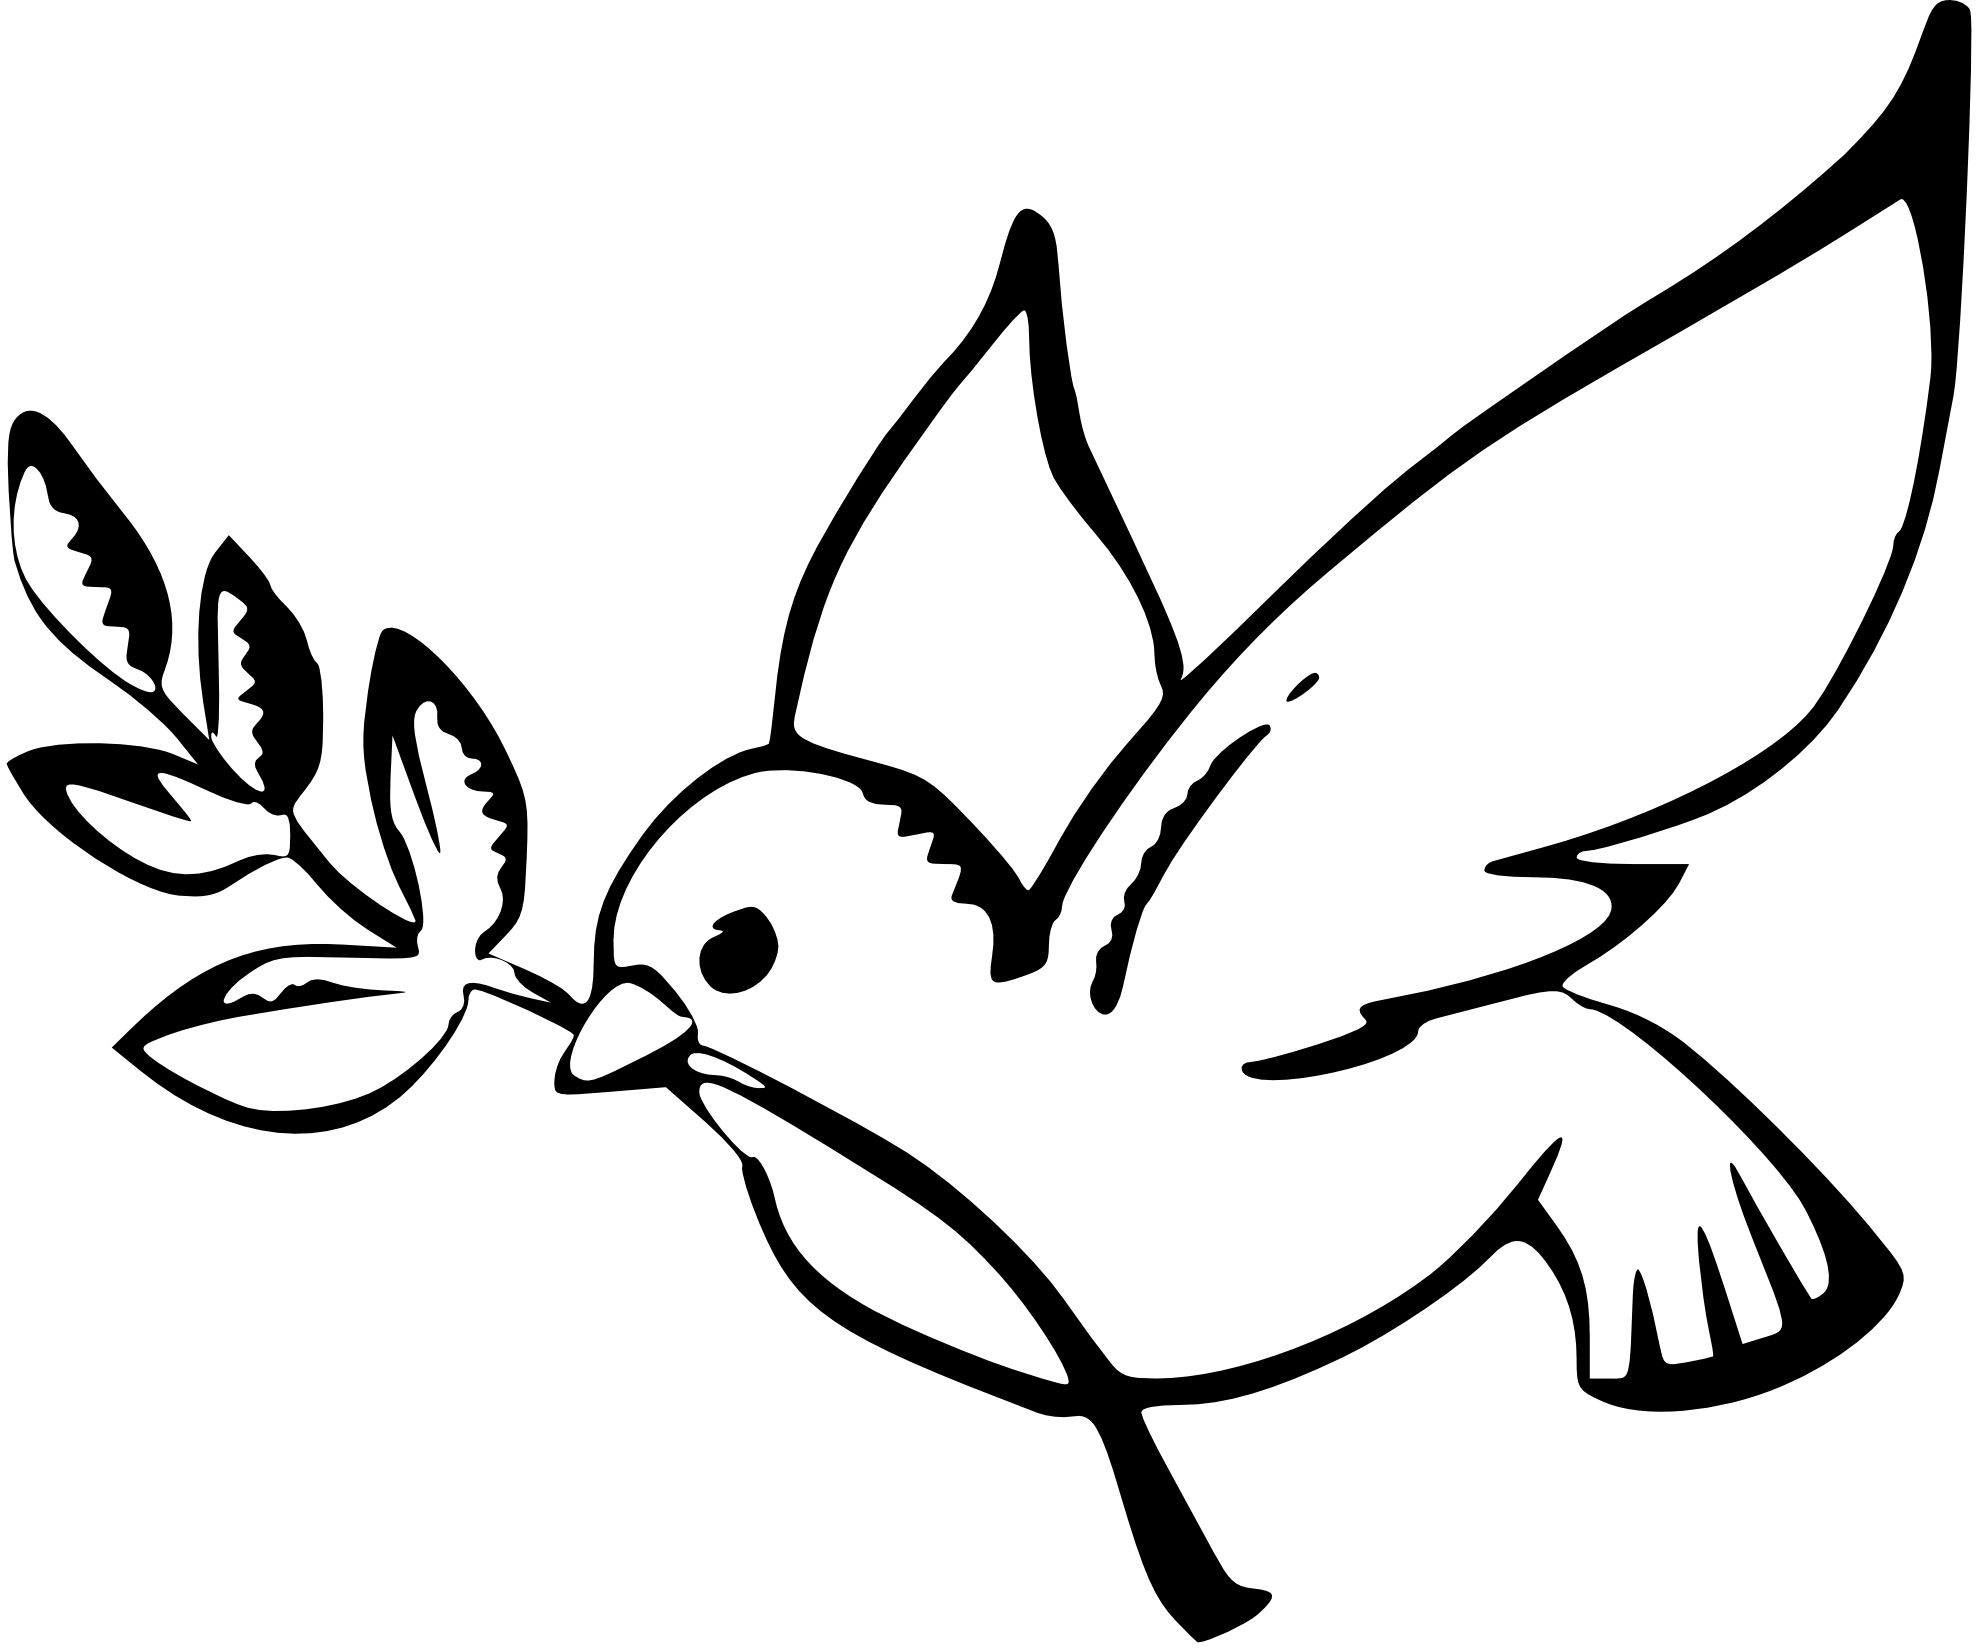 Clipart wedding dove. Earth black and white